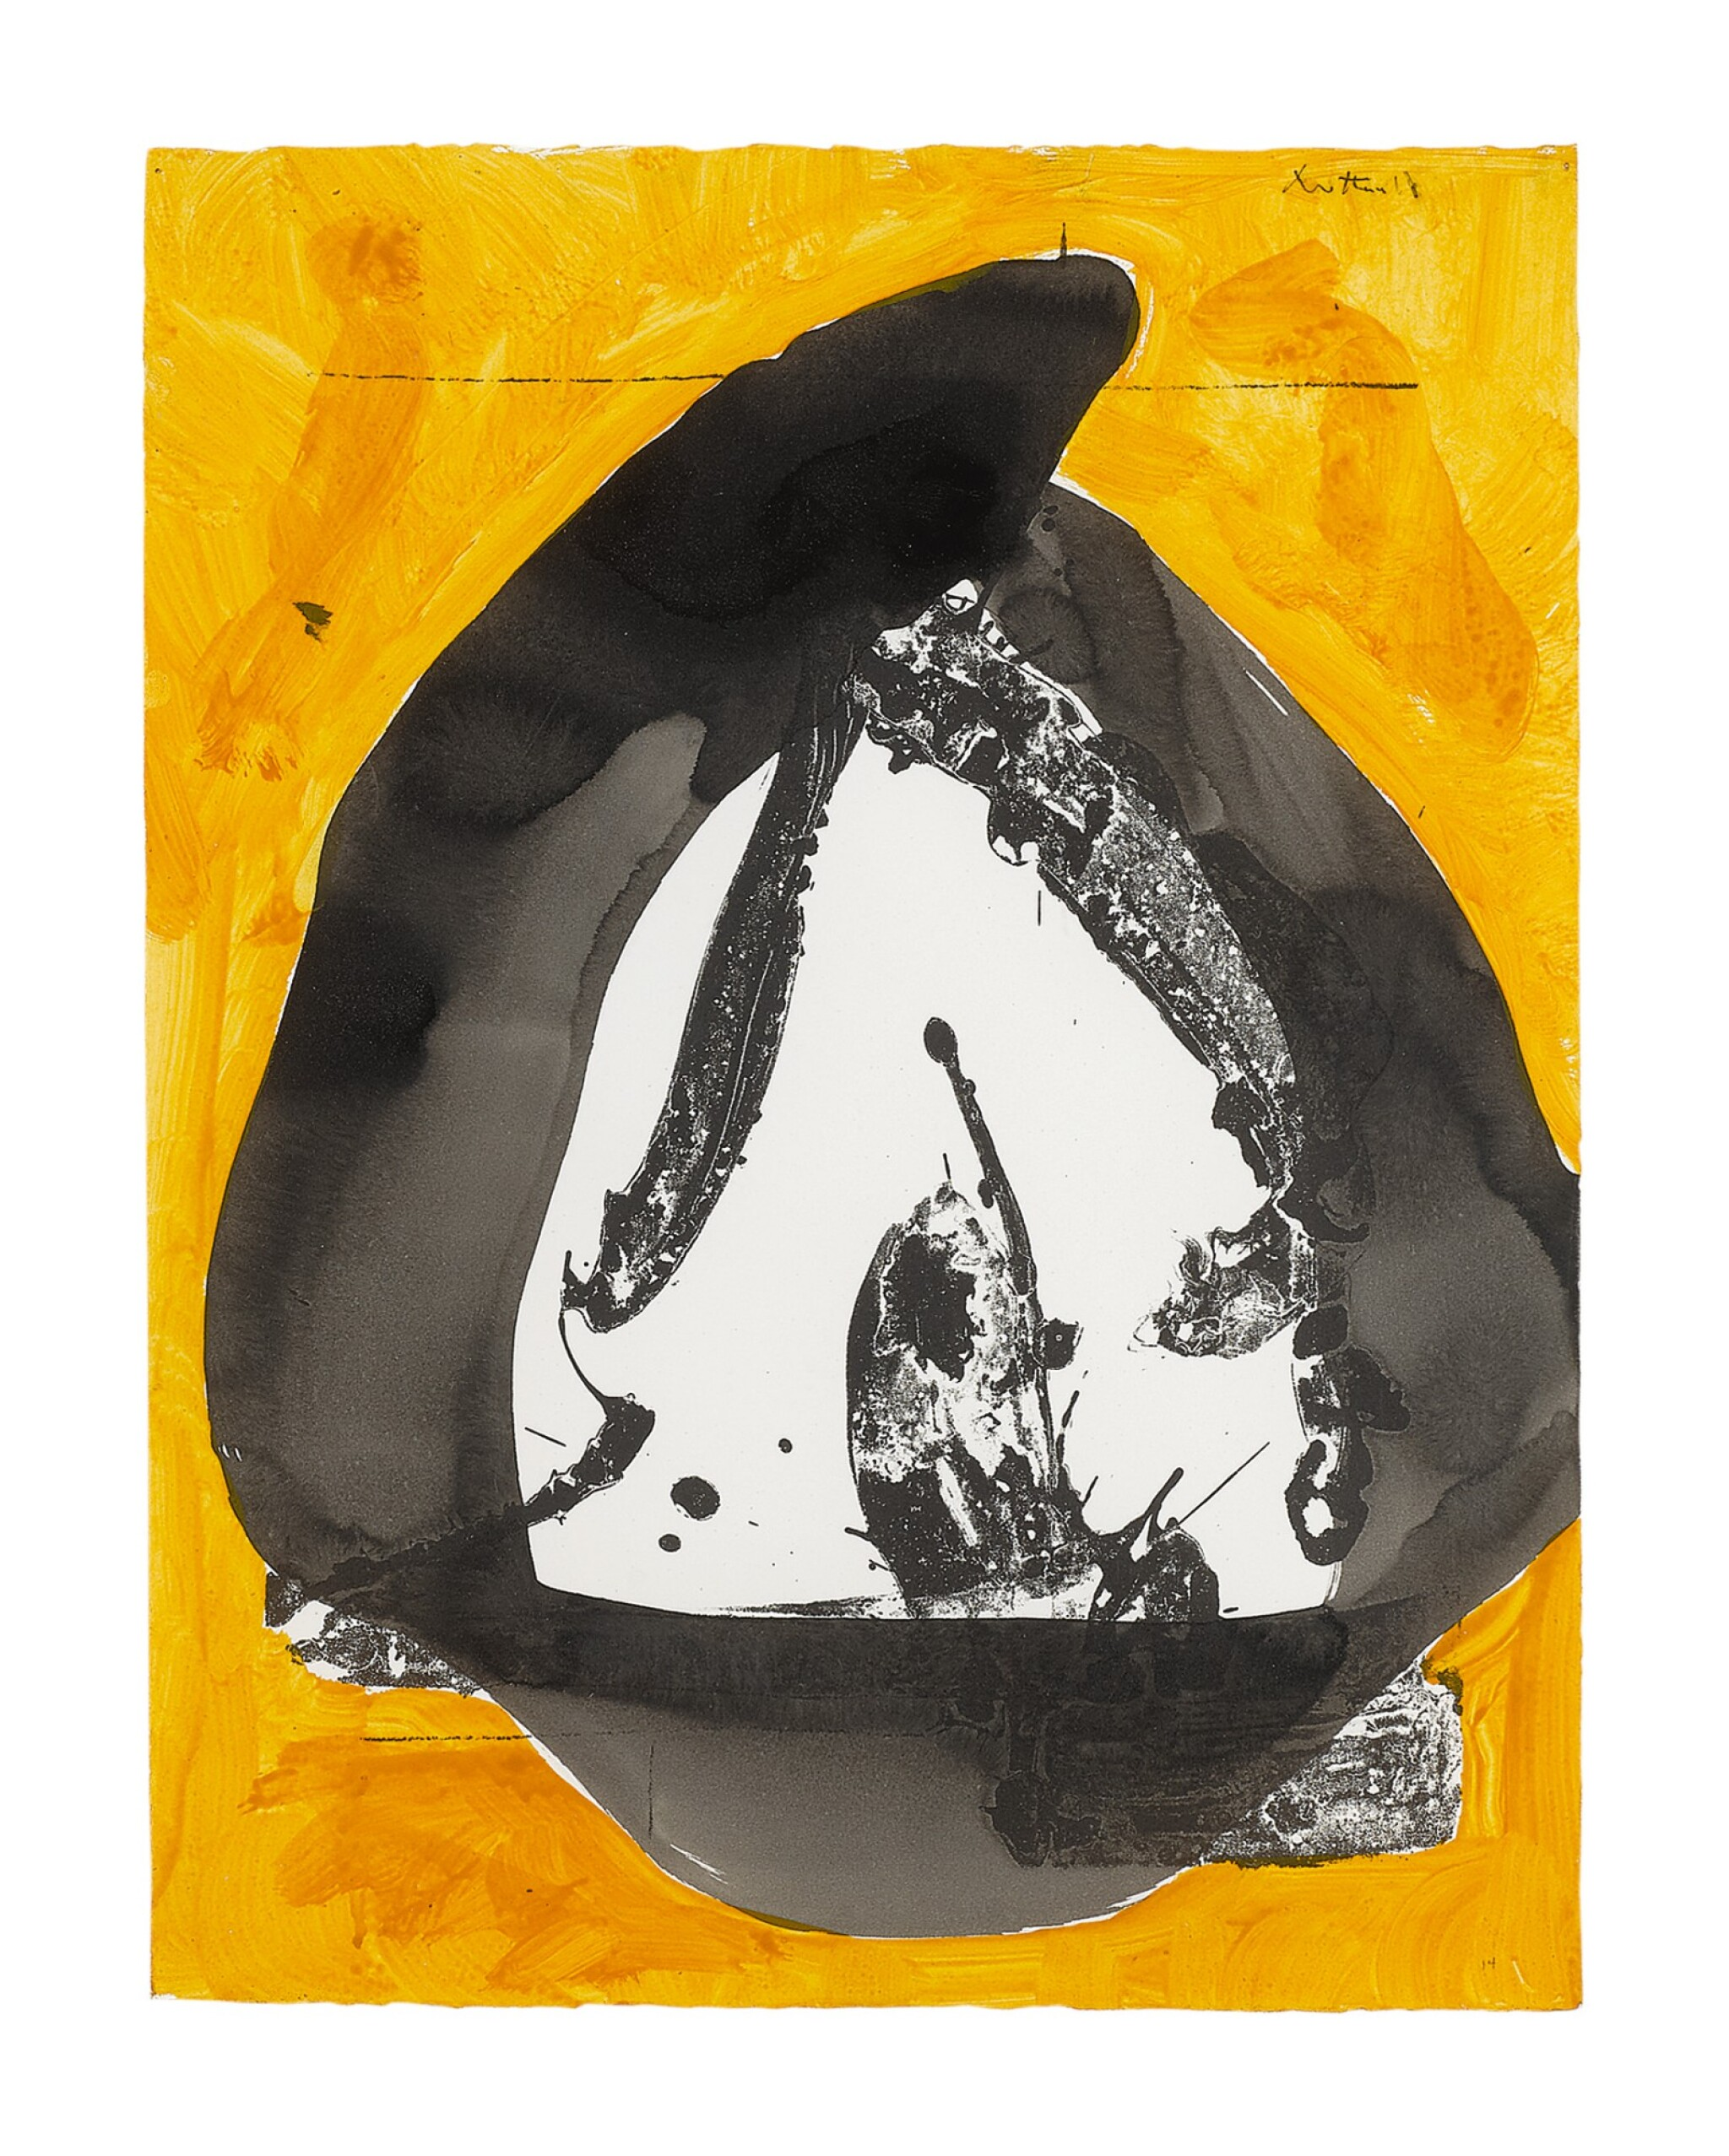 ROBERT MOTHERWELL | YELLOW AND BLACK (THE BASQUE SERIES)